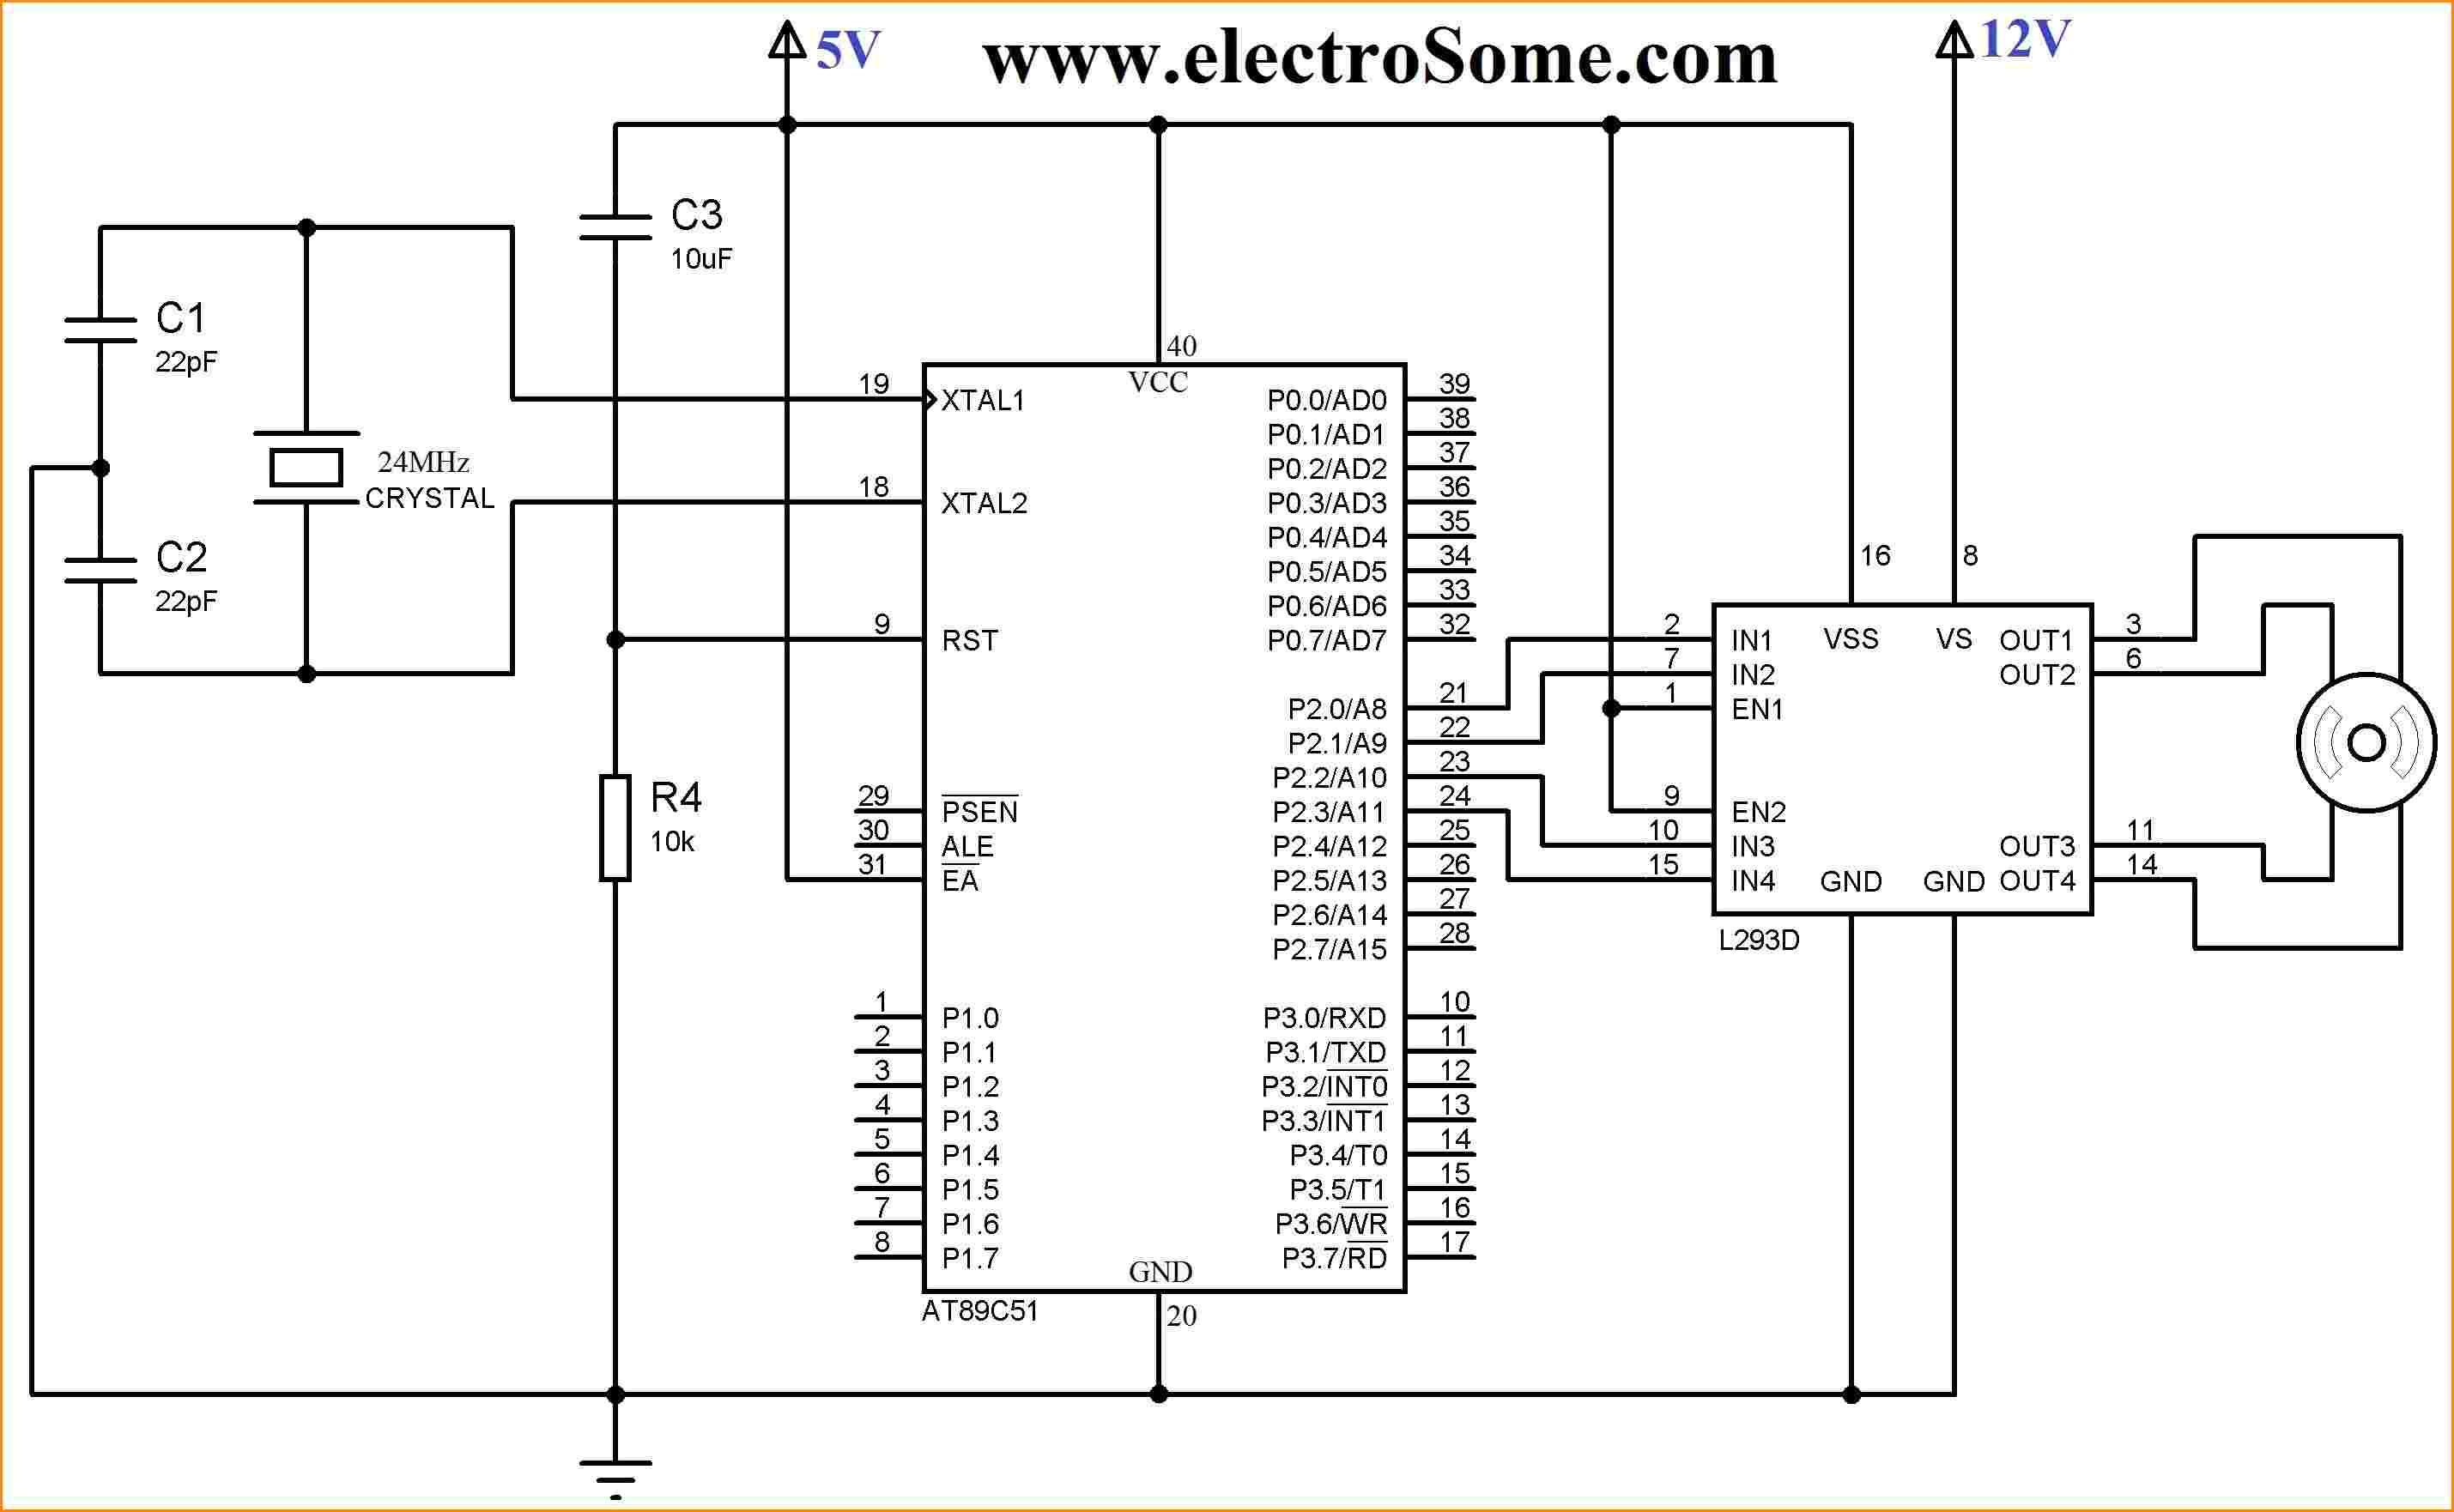 Q See Security Camera Wiring Diagram For | Wiring Diagram - Bunker Hill Security Camera Wiring Diagram